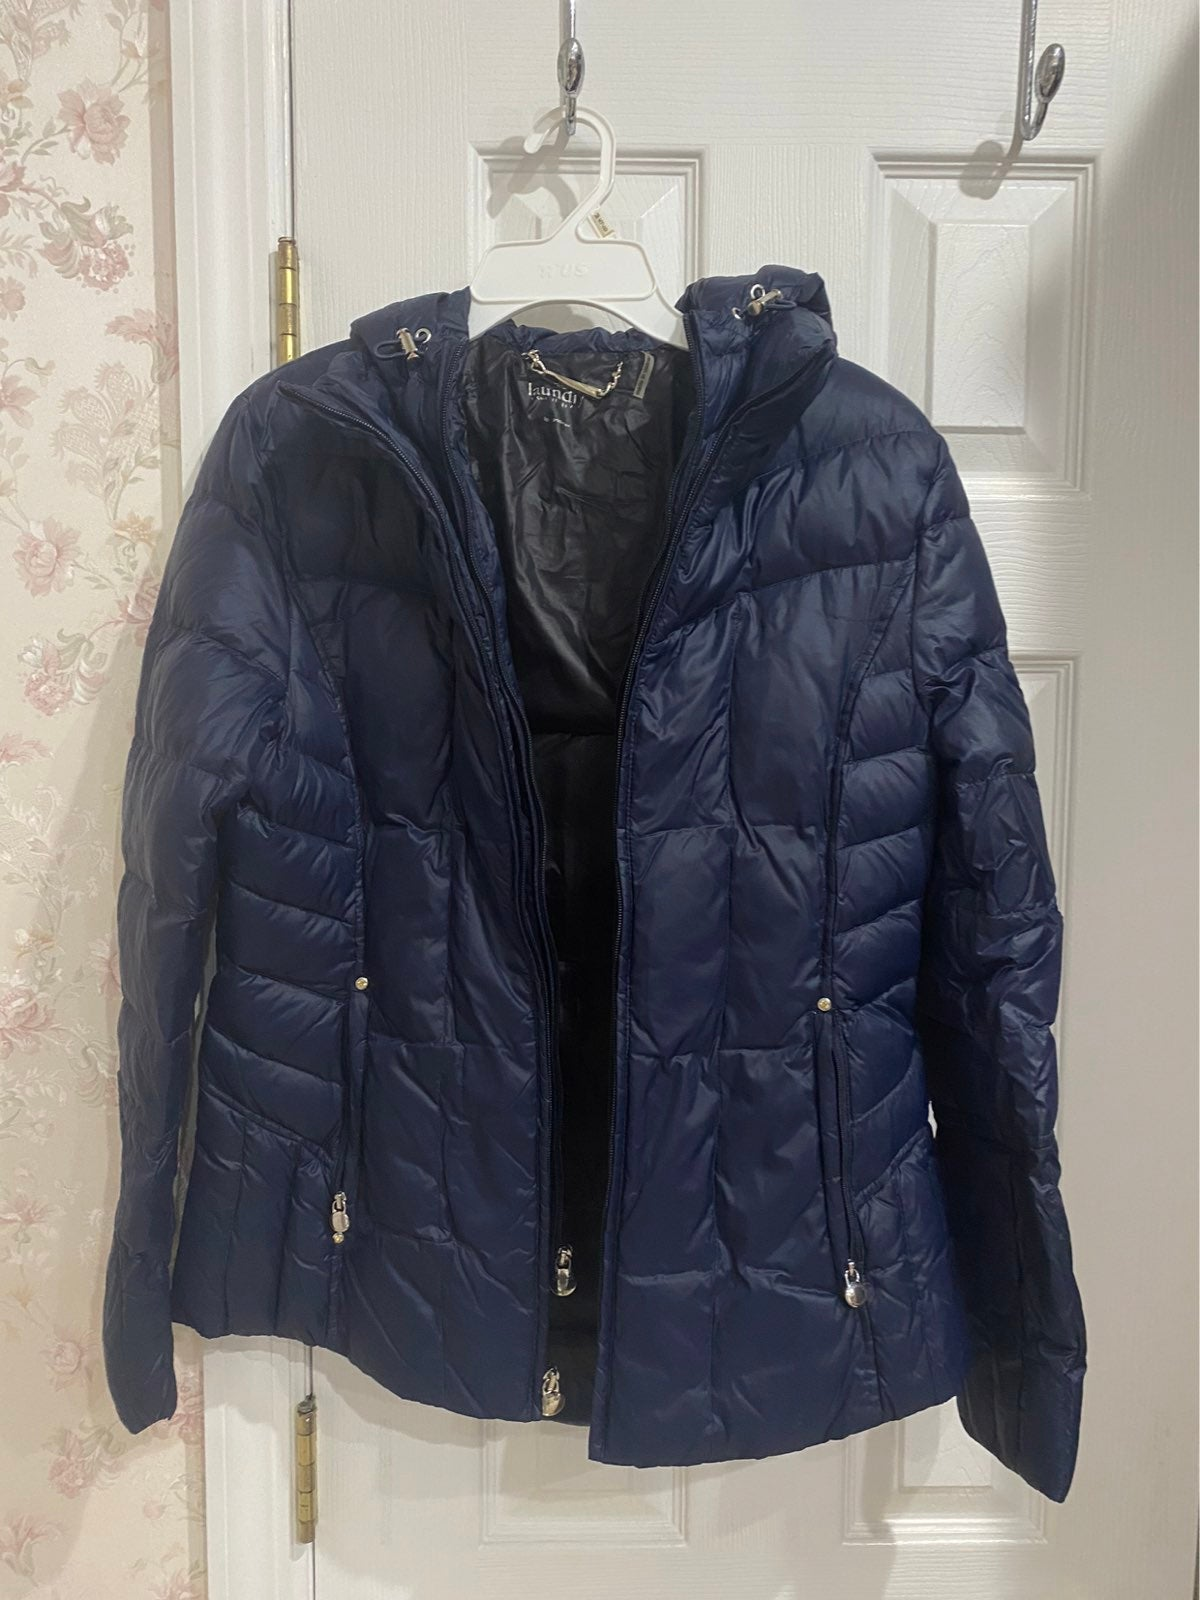 Laundry by Shelli Segal Jacket Size Smal